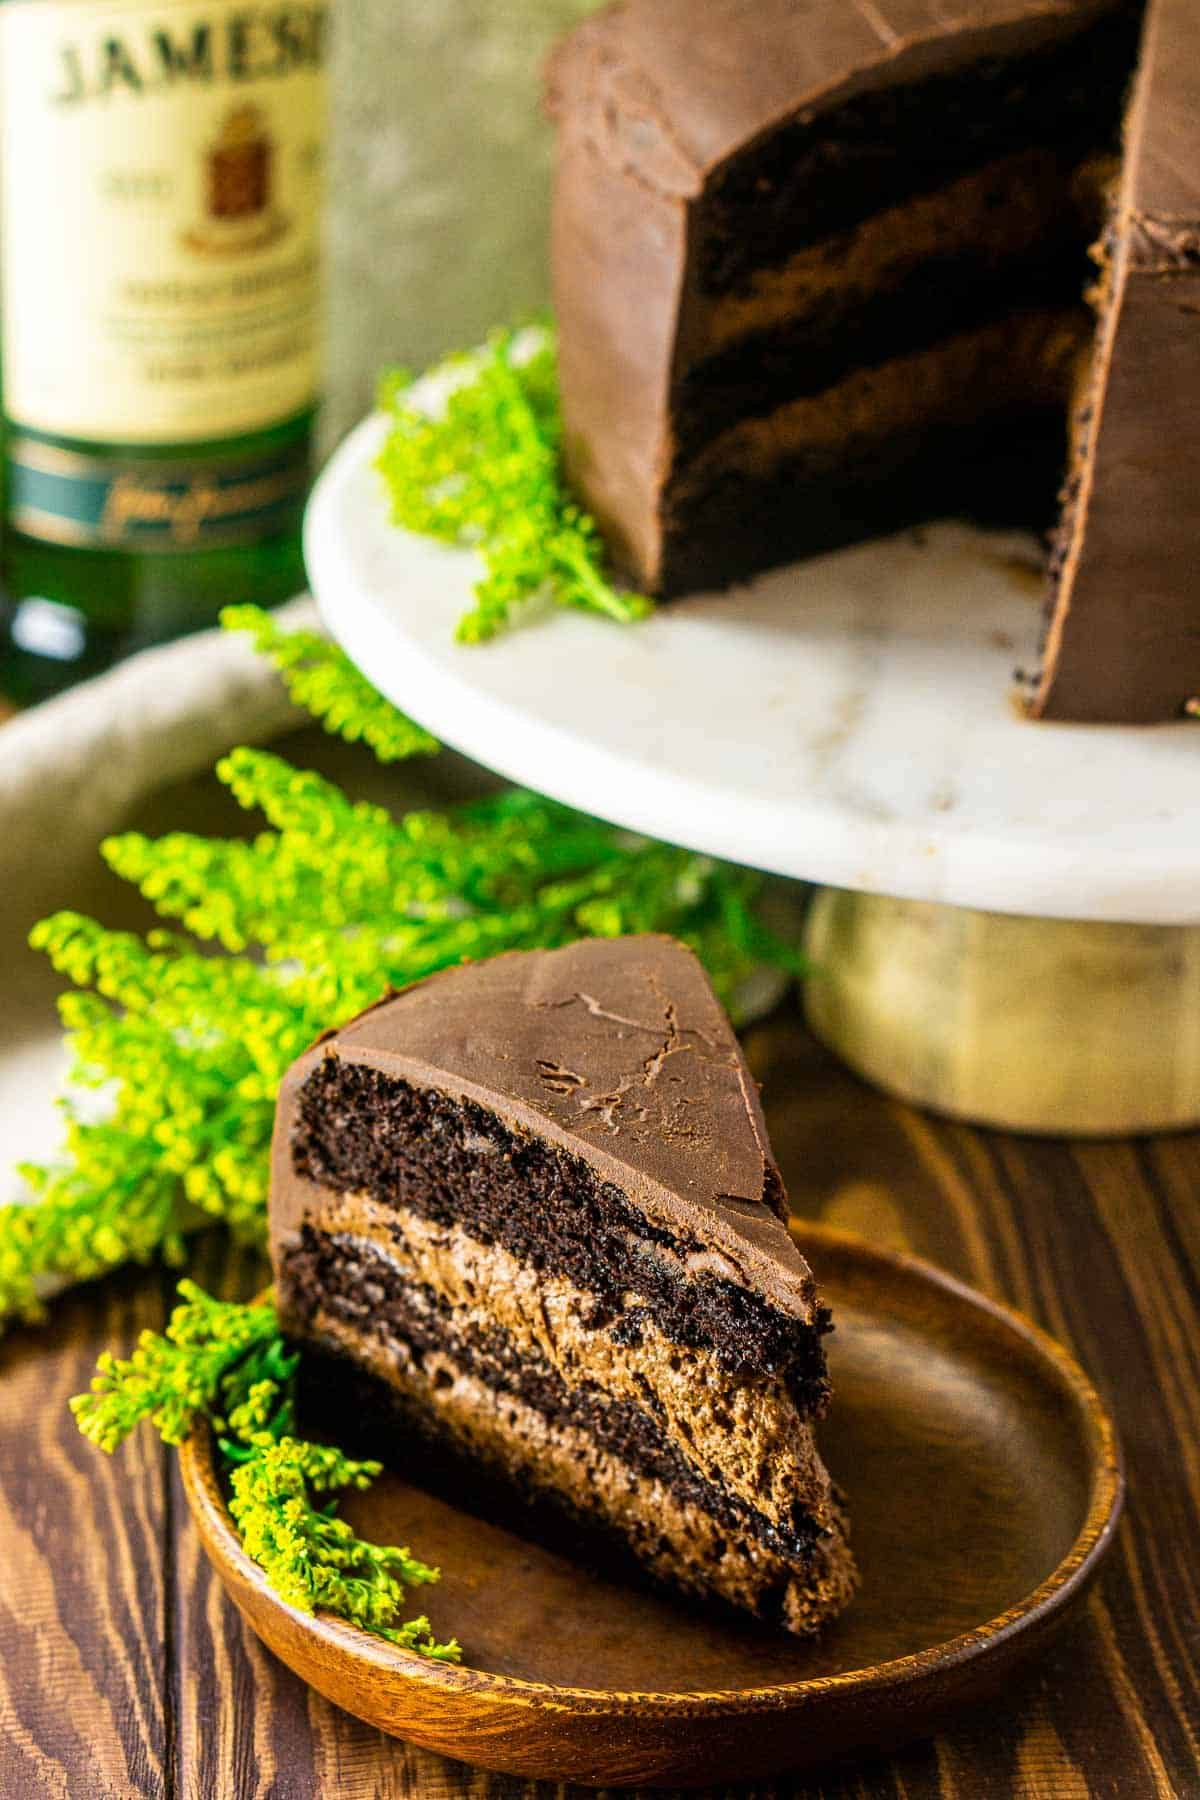 Looking down at a slice of Irish whiskey chocolate cake on a wooden plate with the greenery.